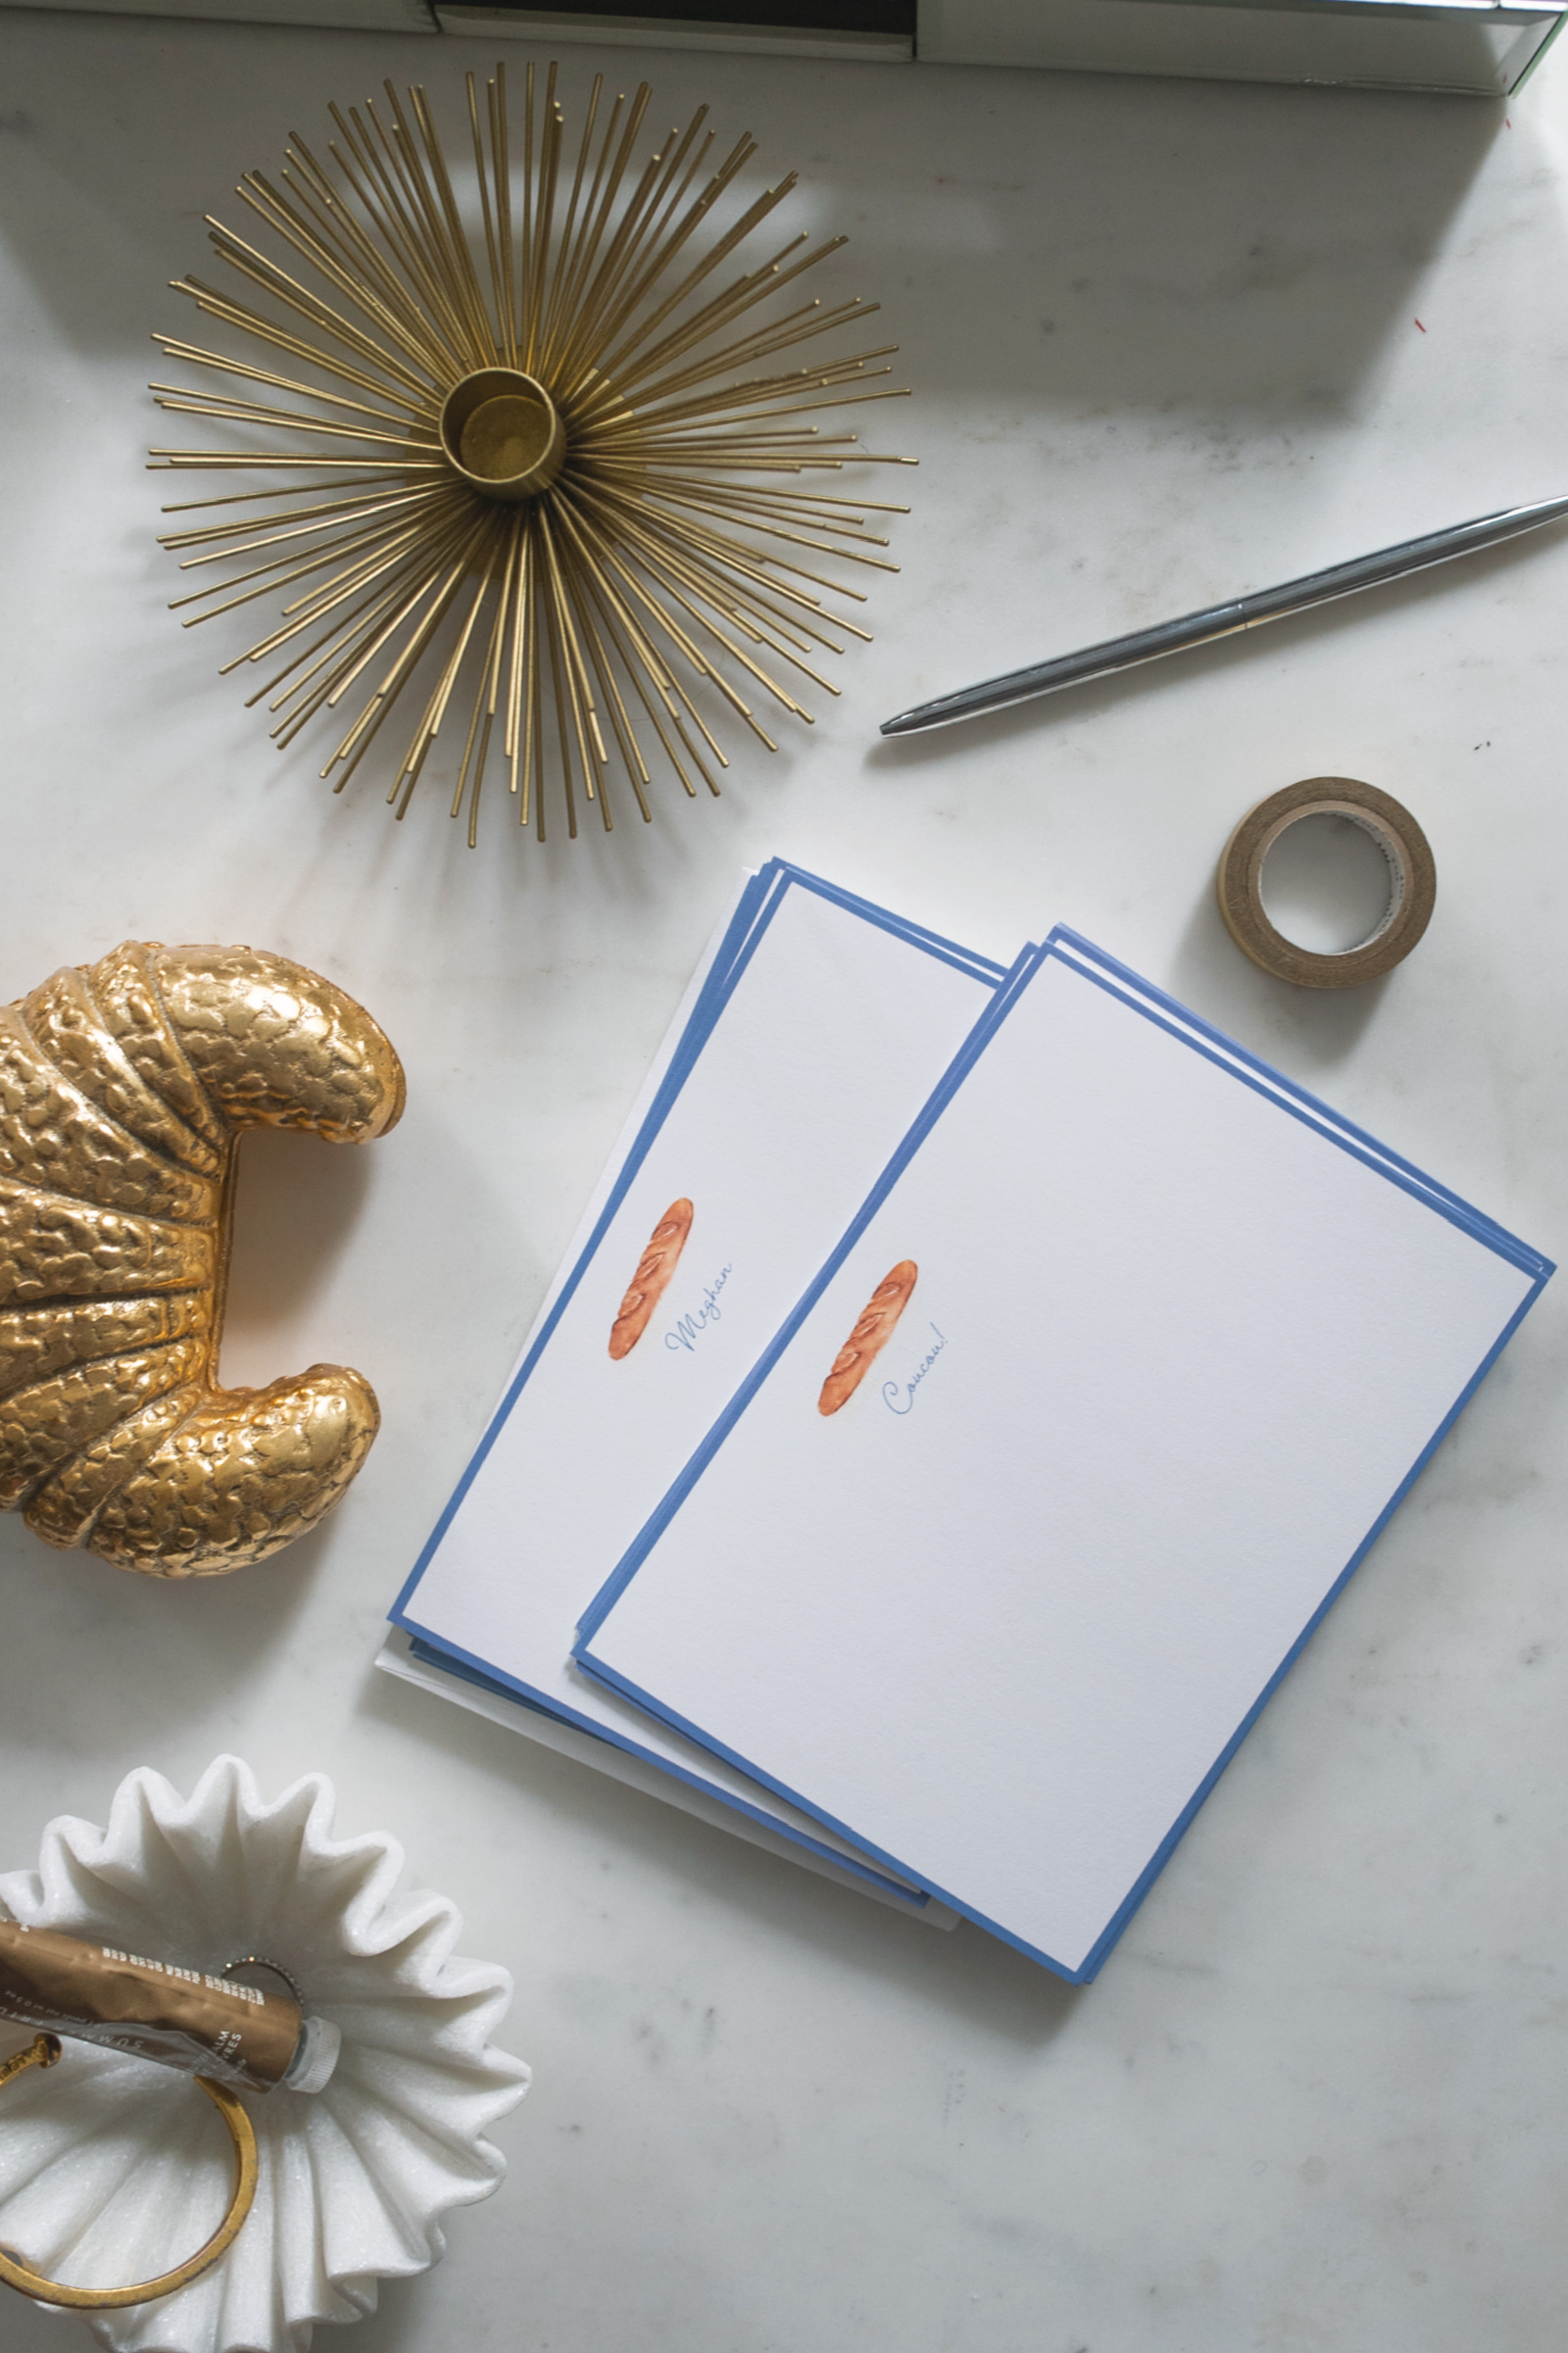 wit & whimsy x The Illustrated Life Baguette Stationery